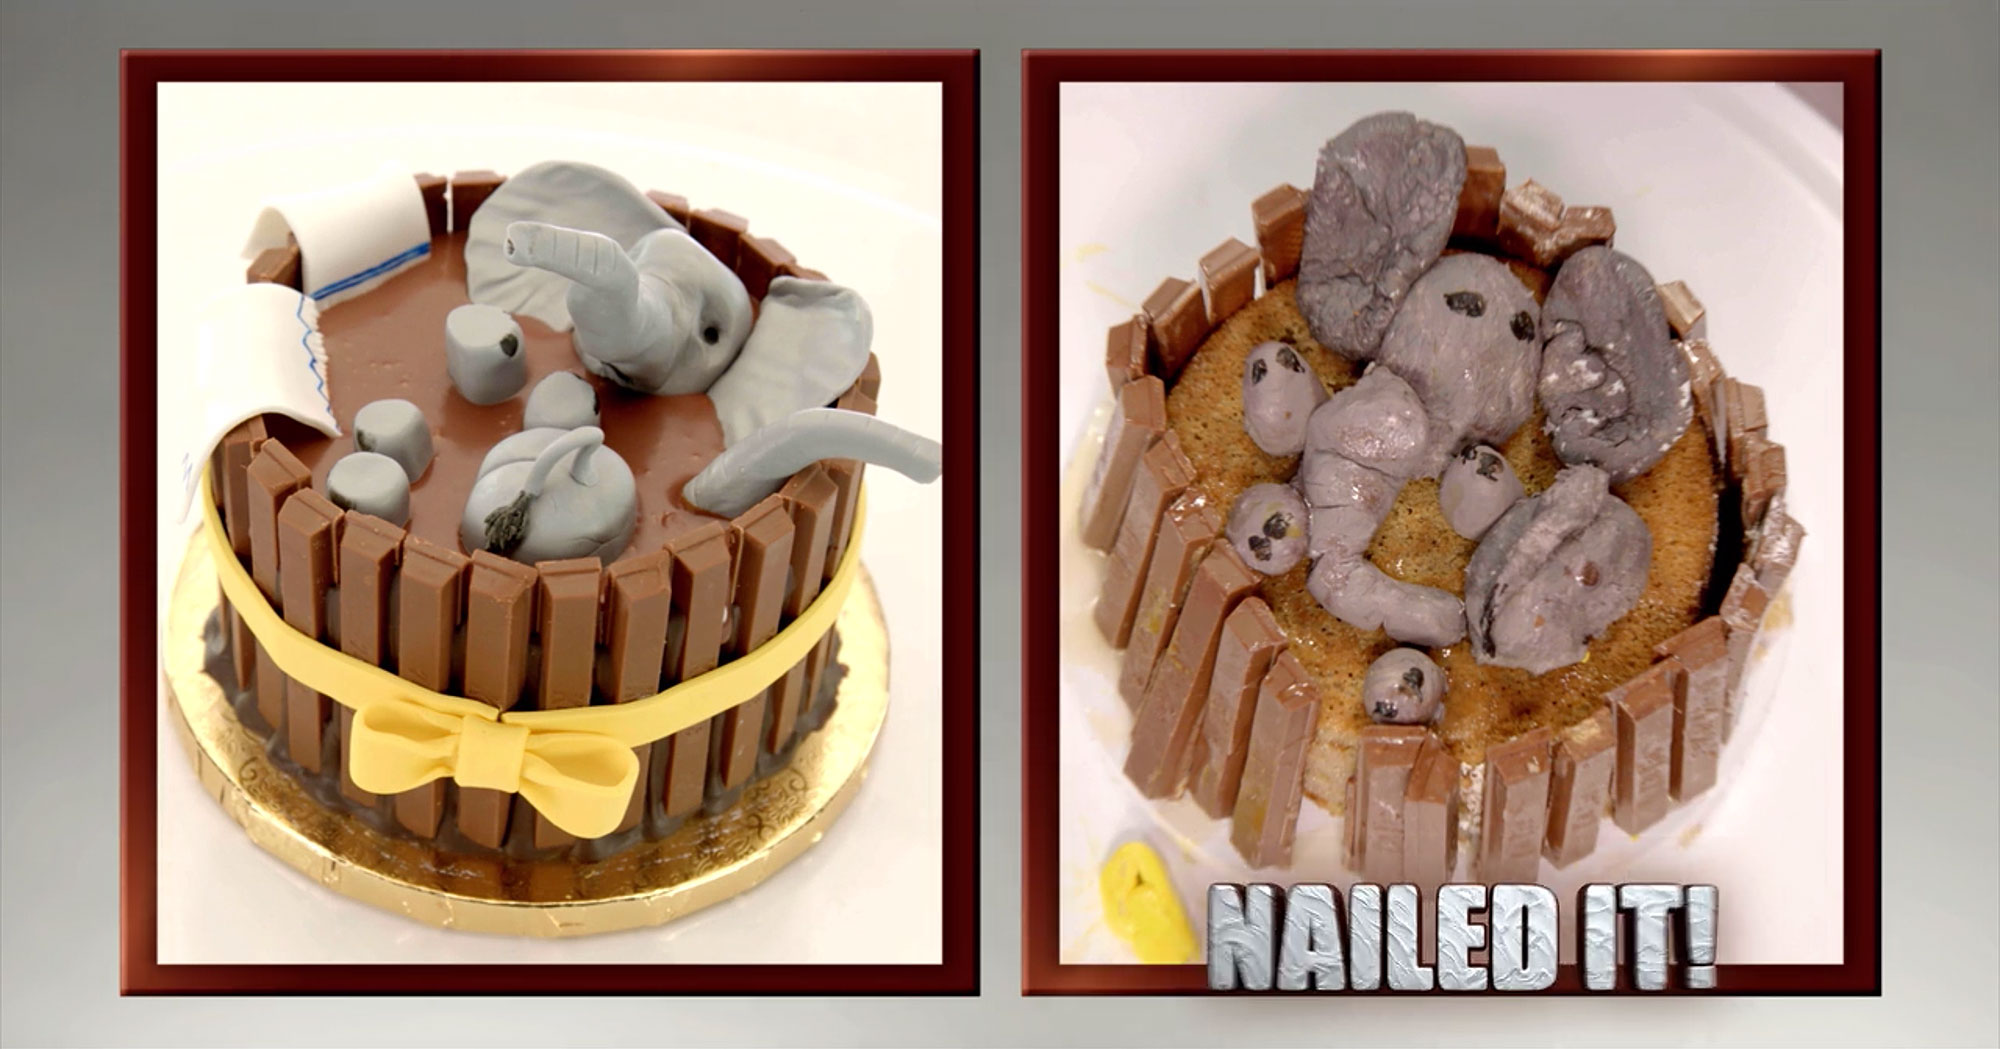 The Best (Worst) Baking Fails from Nailed ItCredit: Netflix